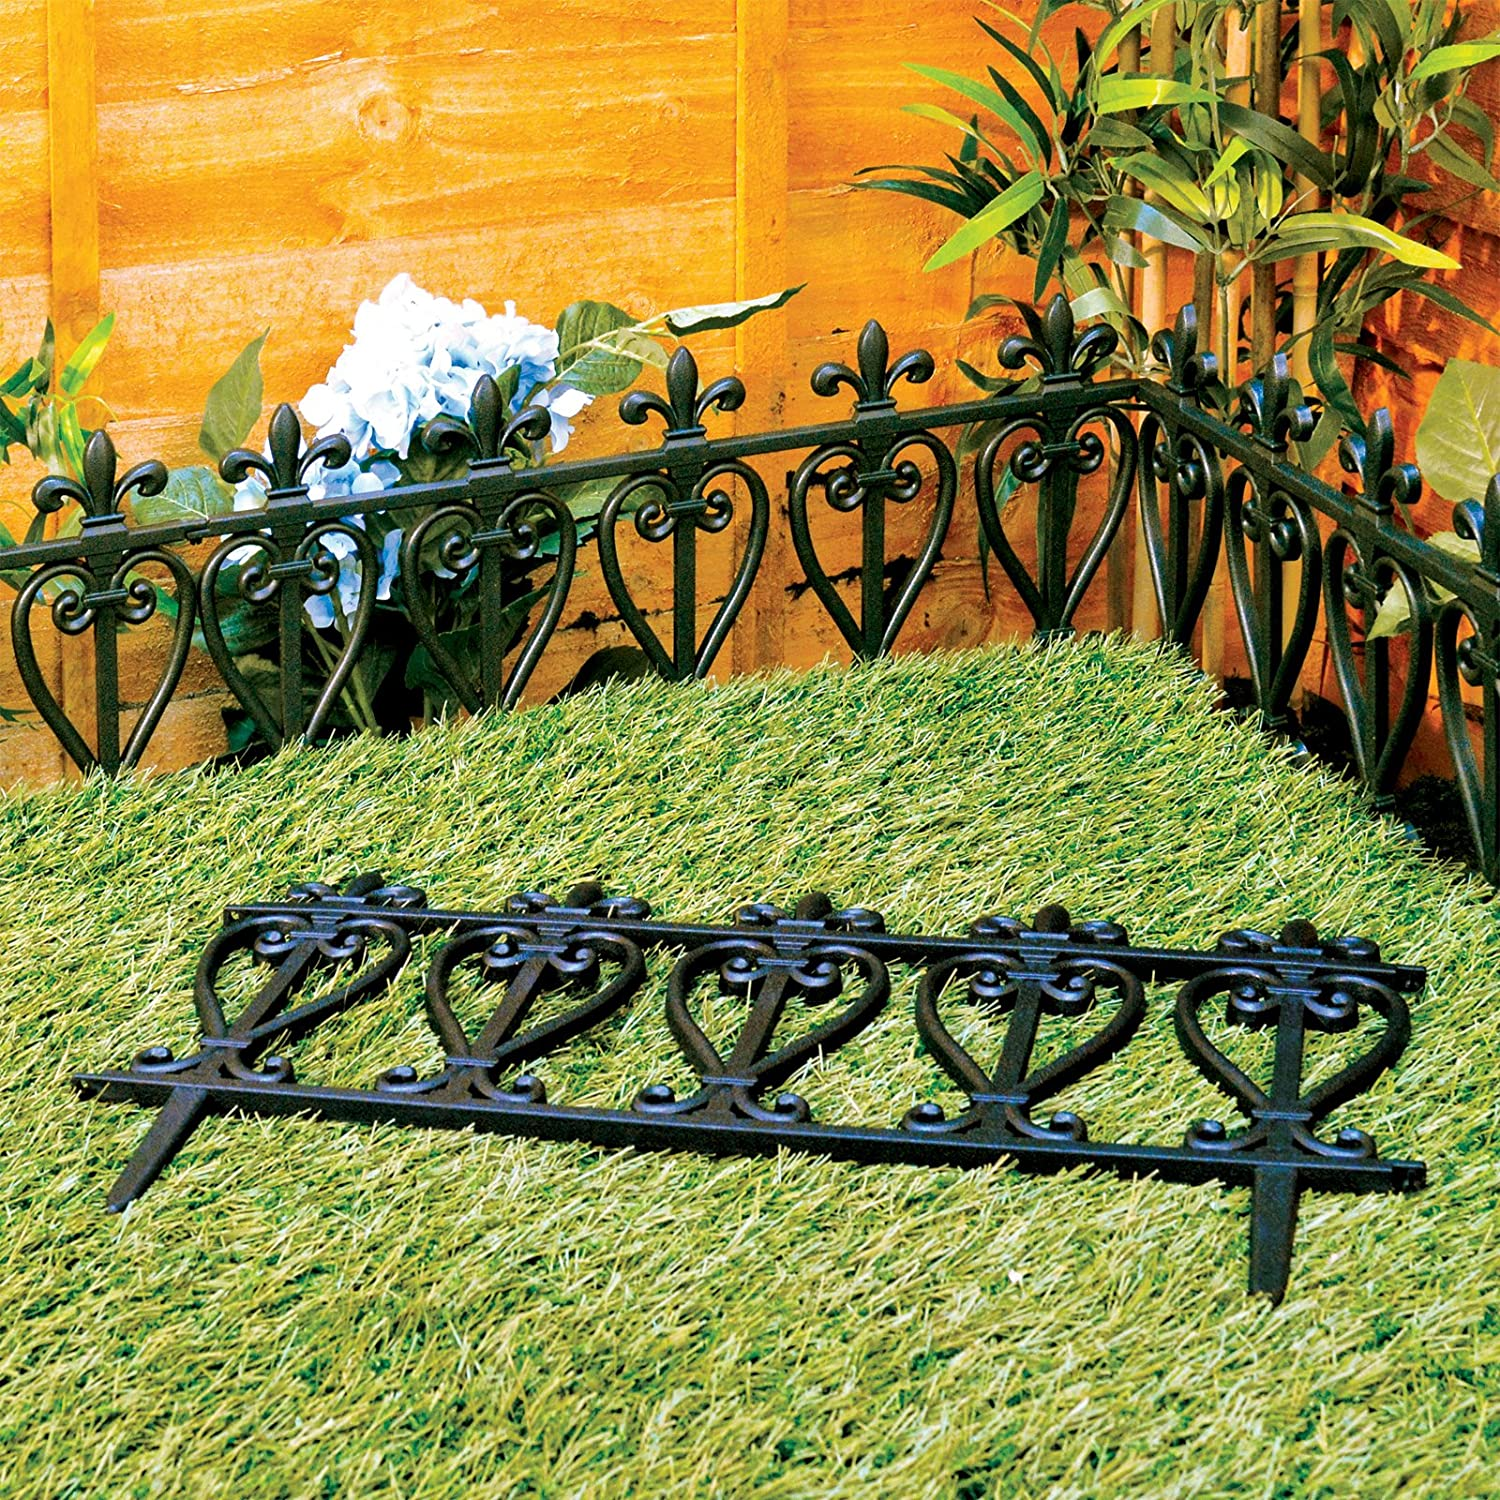 Victorian Style Black Fencing Garden Edging   Ornate Fence Border For Lawn  / Flowerbed: Amazon.co.uk: Garden U0026 Outdoors